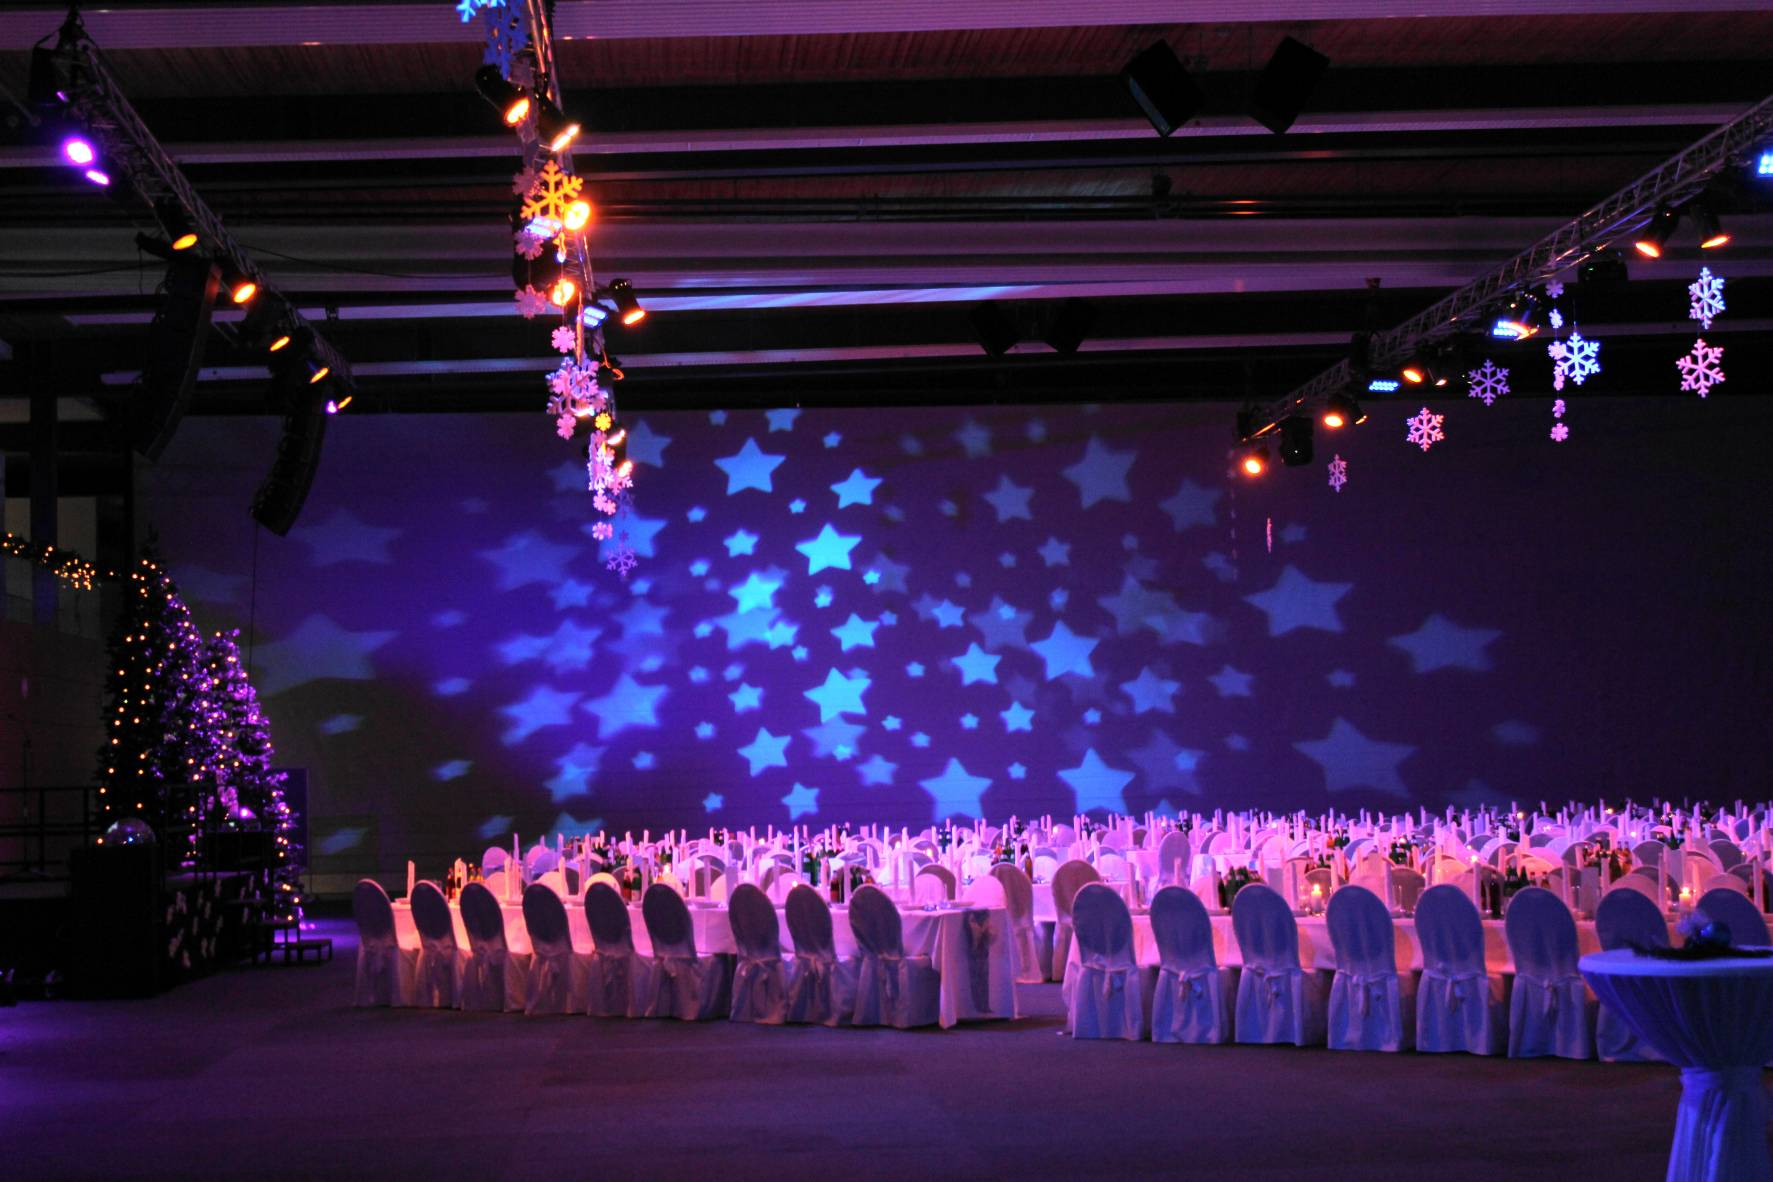 Eventlocation; Gala; Event; Illumination; Turnhalle; Eventausstattung